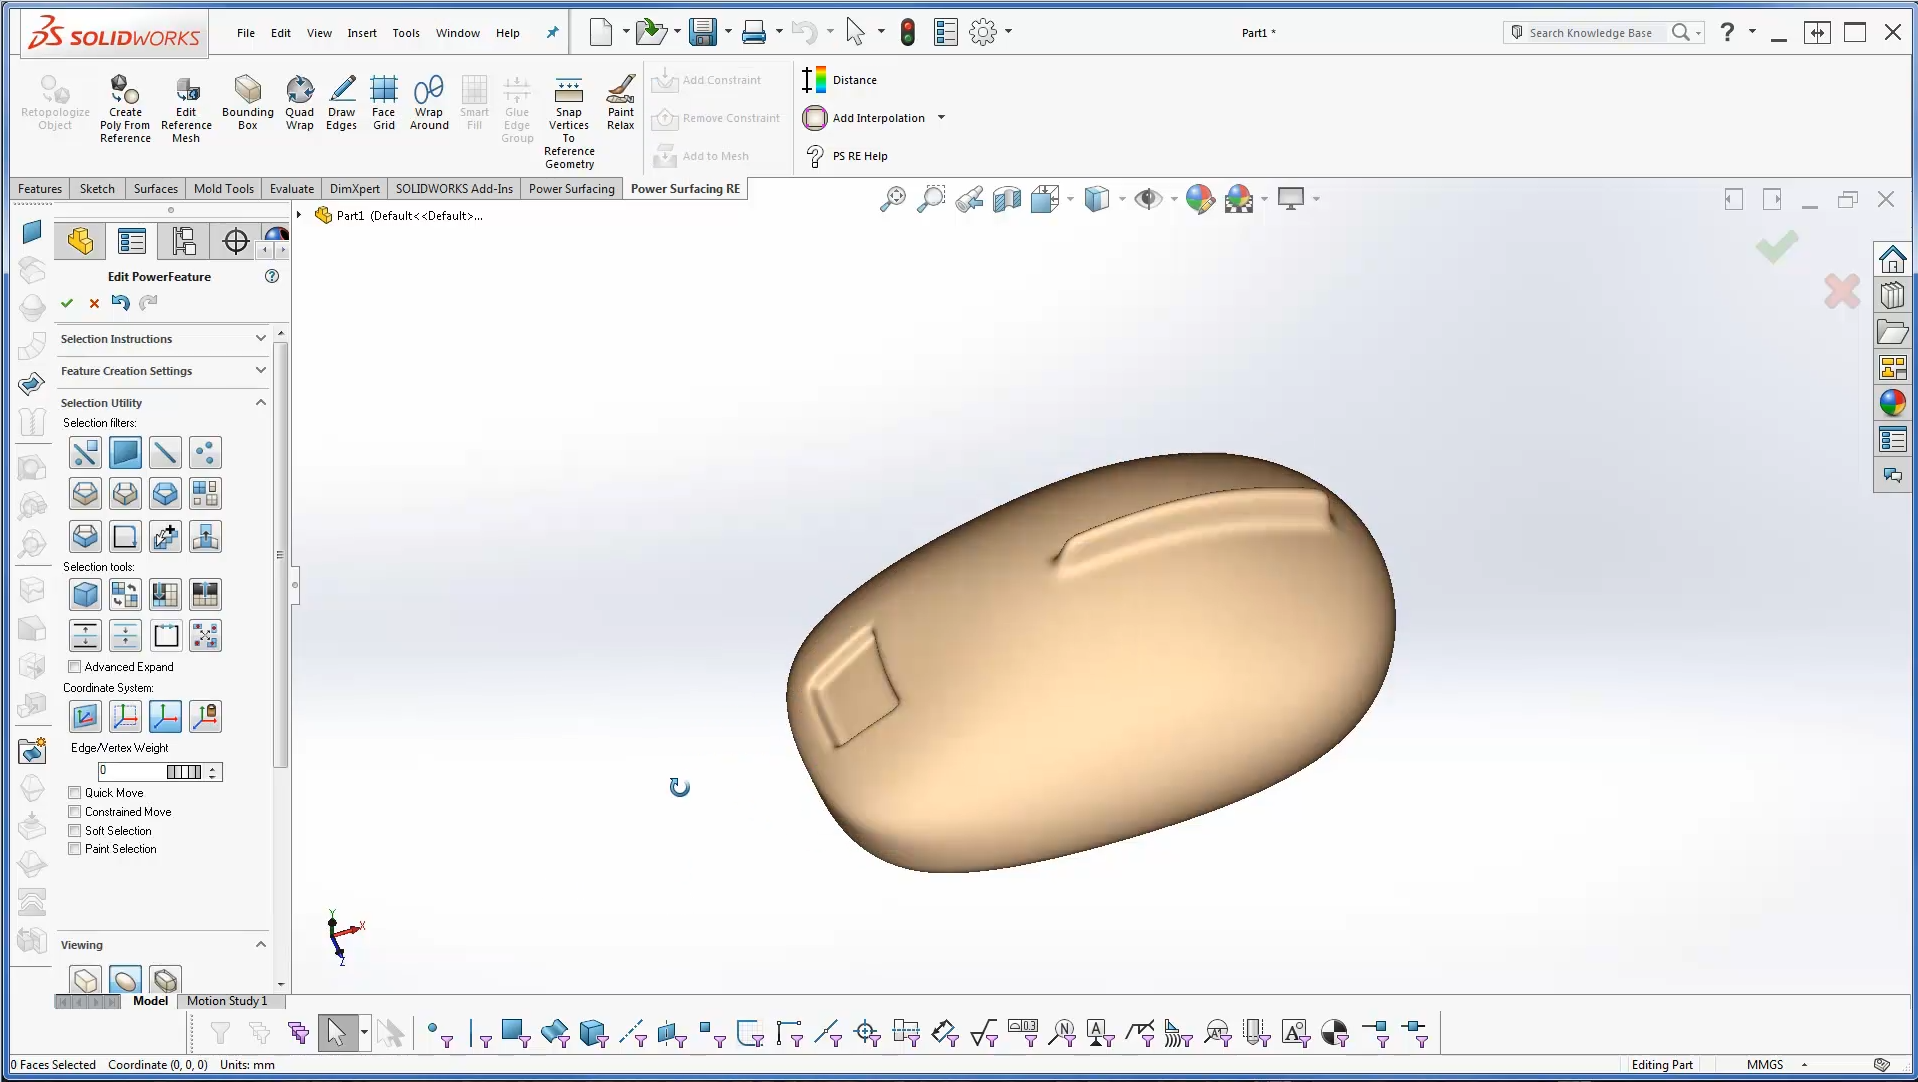 Power Surfacing RE (Reverse Engineering) for SolidWorks